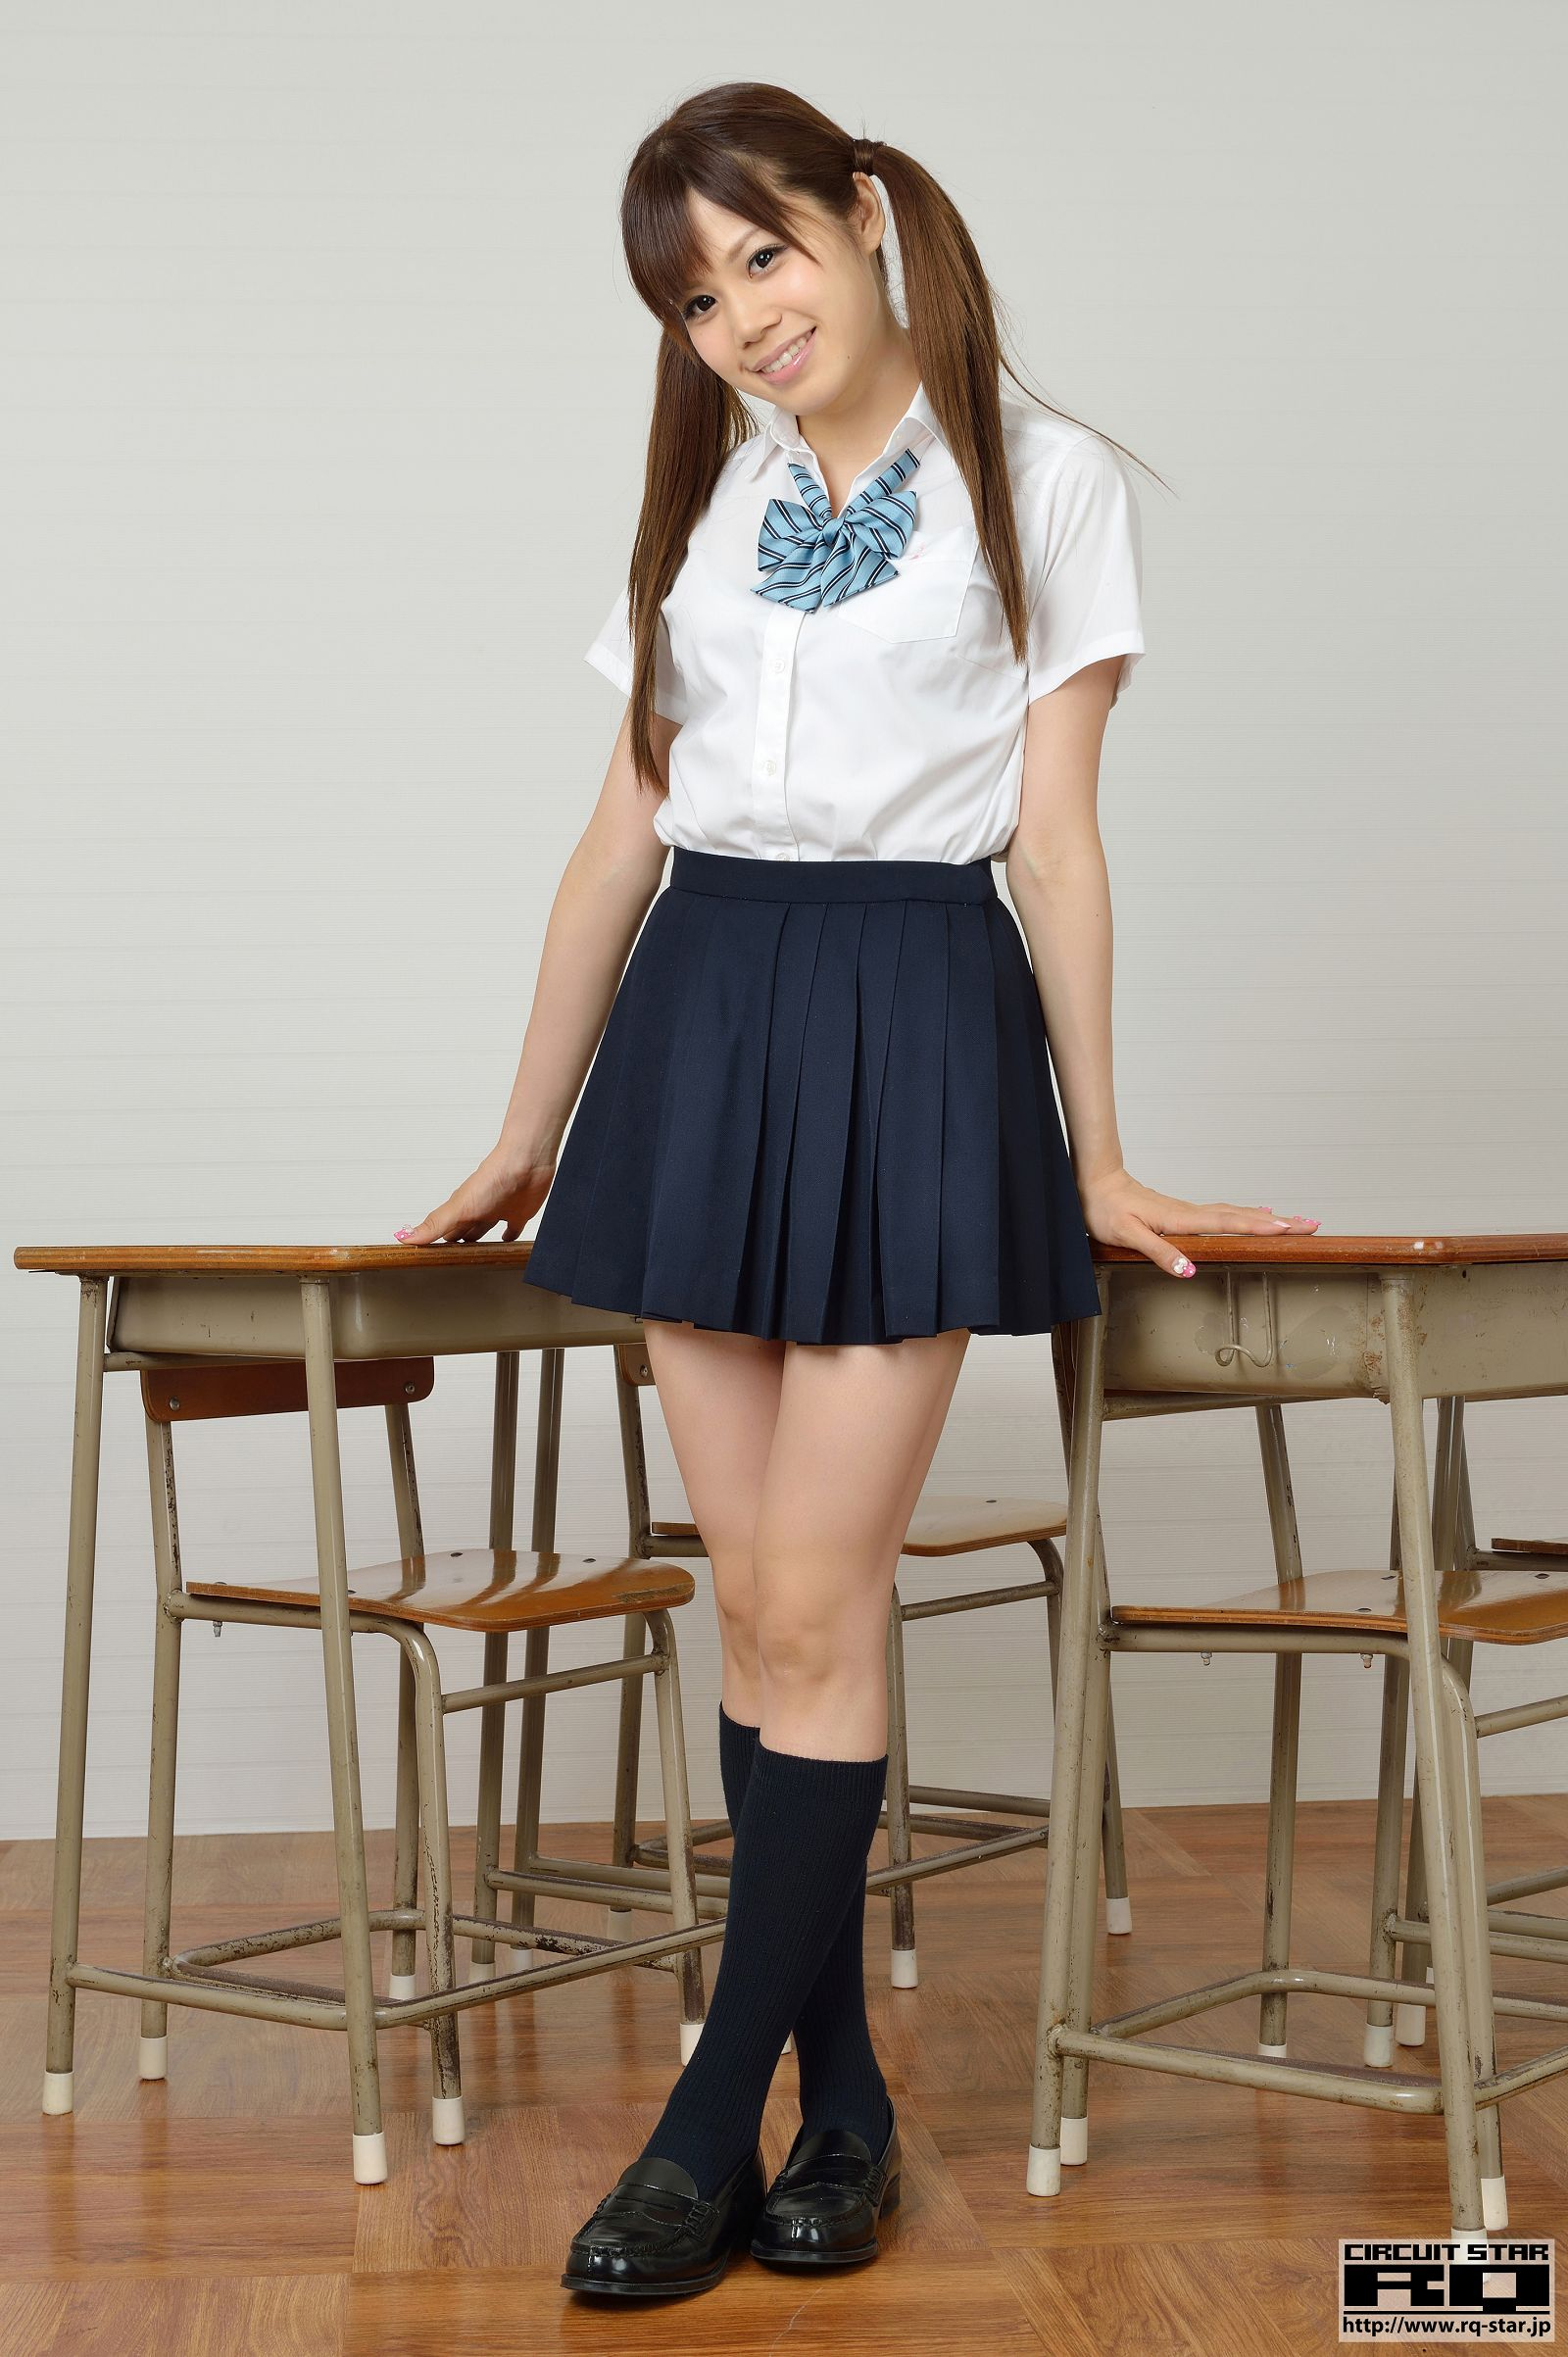 [RQ STAR美女] NO.00990 Asuka Nakano 中野あすか School Girl[100P] RQ STAR 第1张